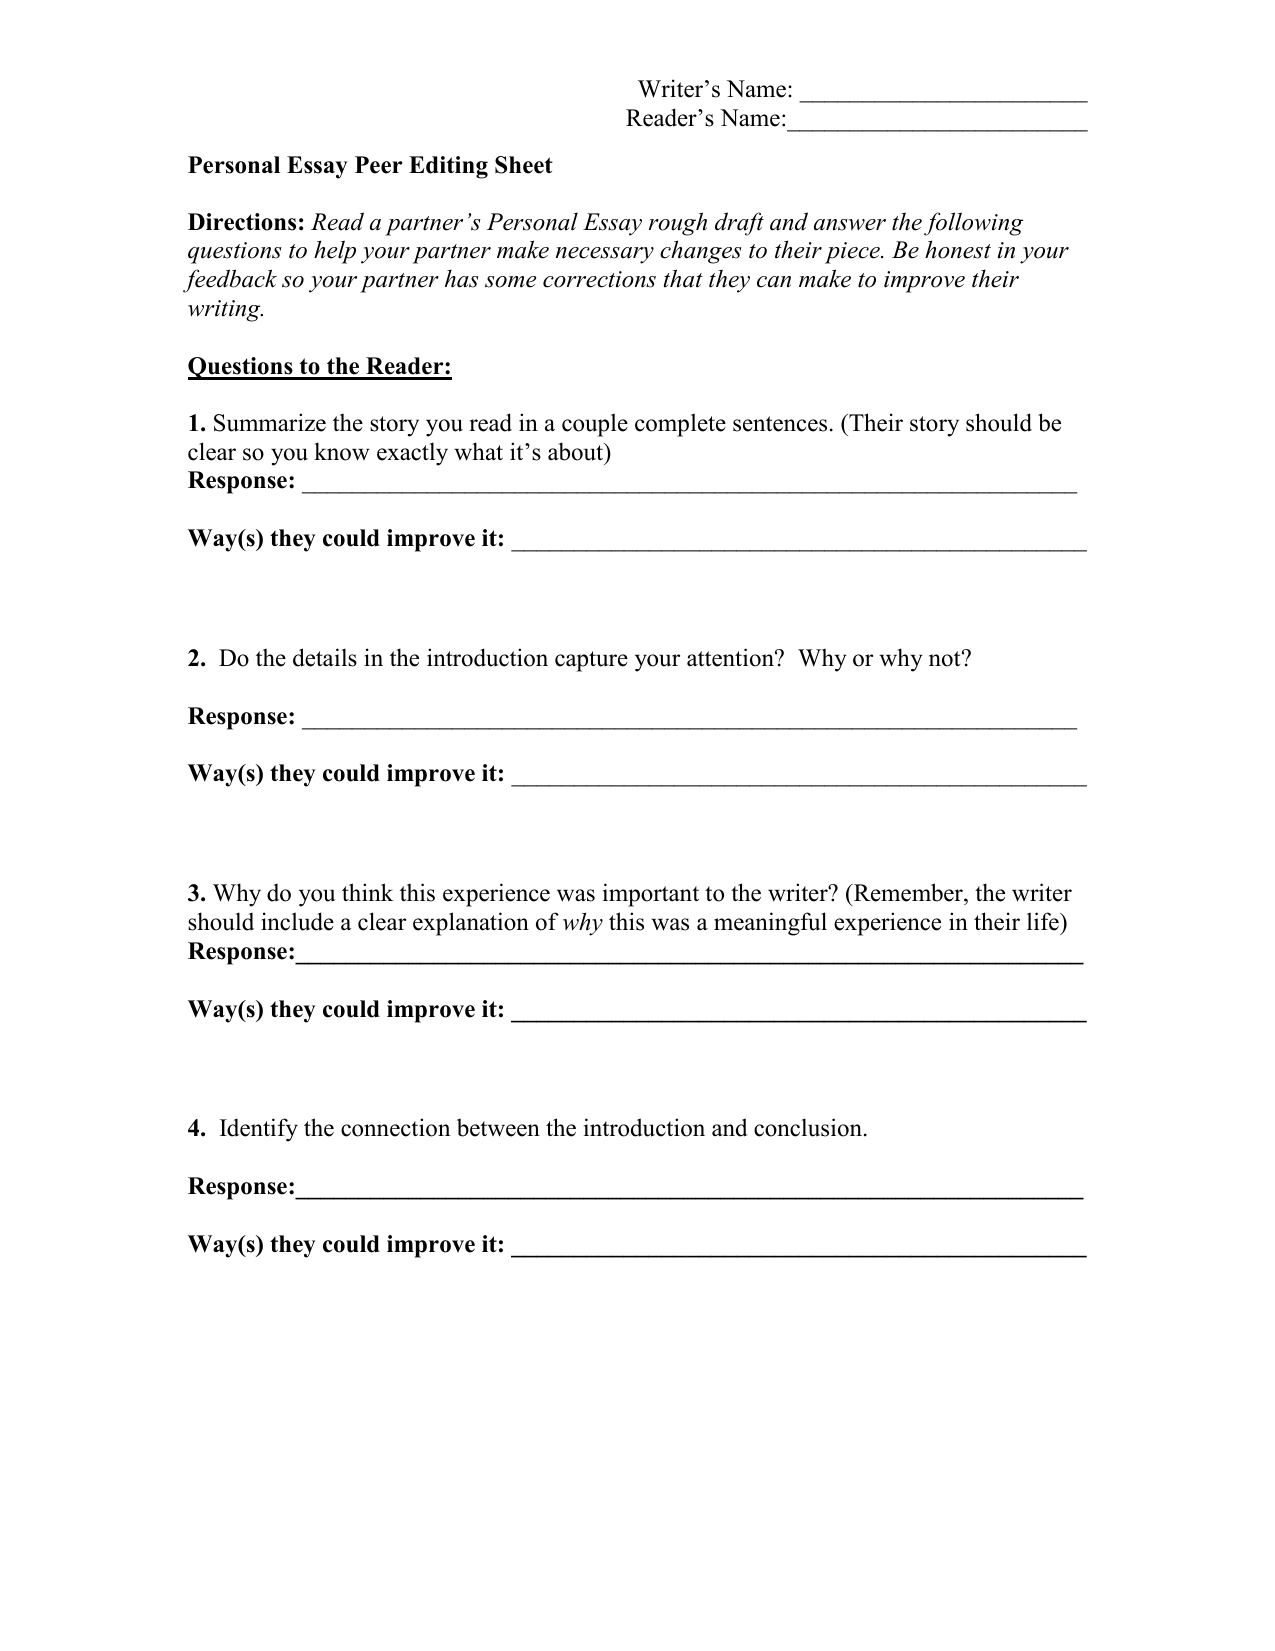 narrative essay peer edit sheet Alfred health nursing values essay how to write references after an essay improper garbage disposal essay writer virtual reality research paper quilling business valuation research paper british essay writer reviews of london write introduction personal essay research paper on agile manufacturing pdf words used college essay south africa essay.